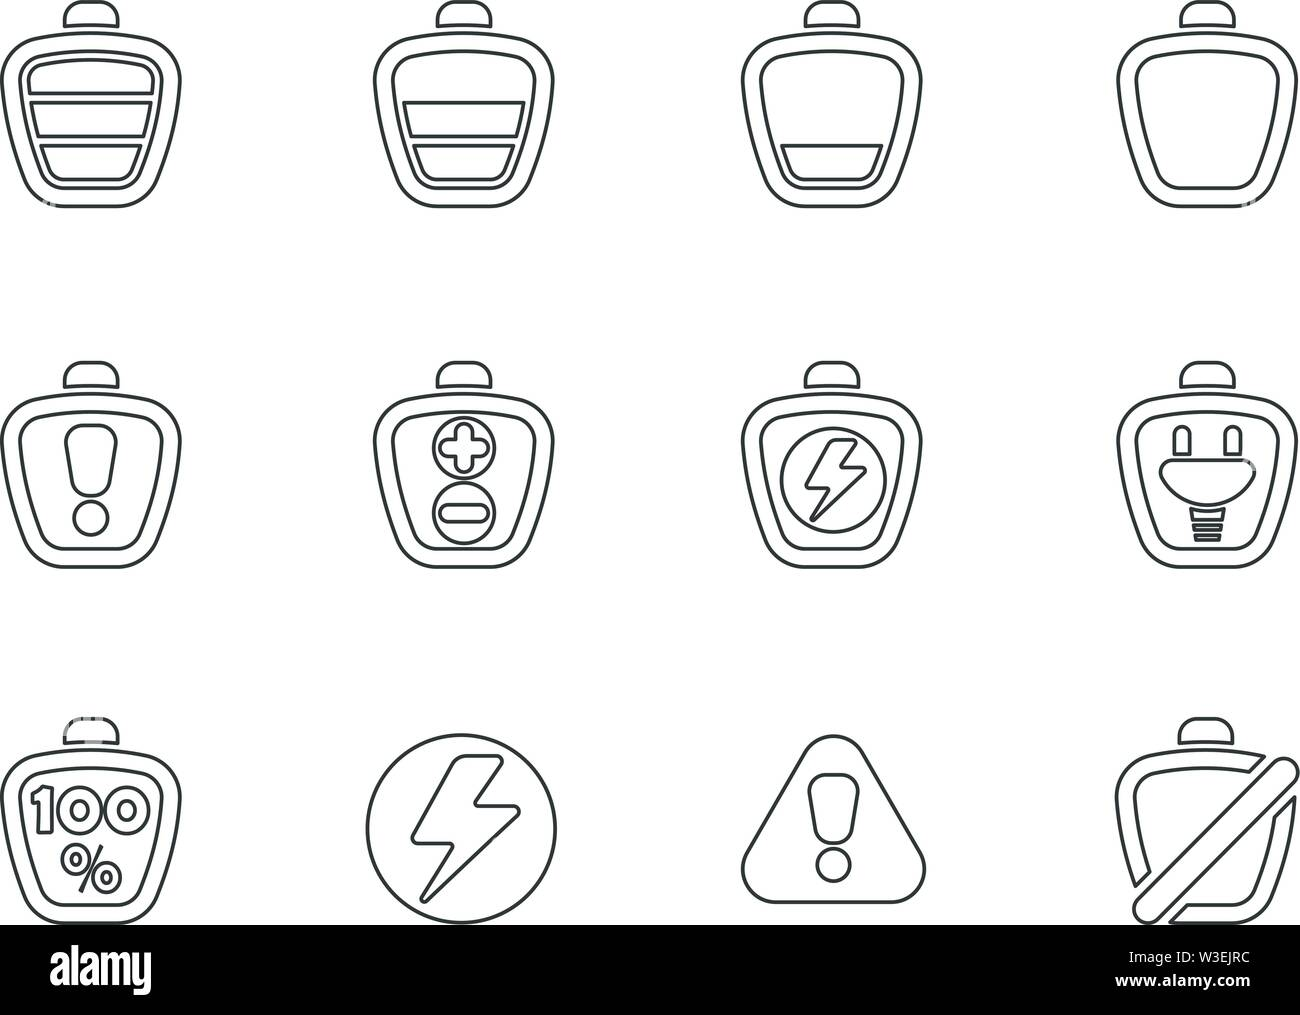 Battery line icons set isolated for user interface design - Stock Image